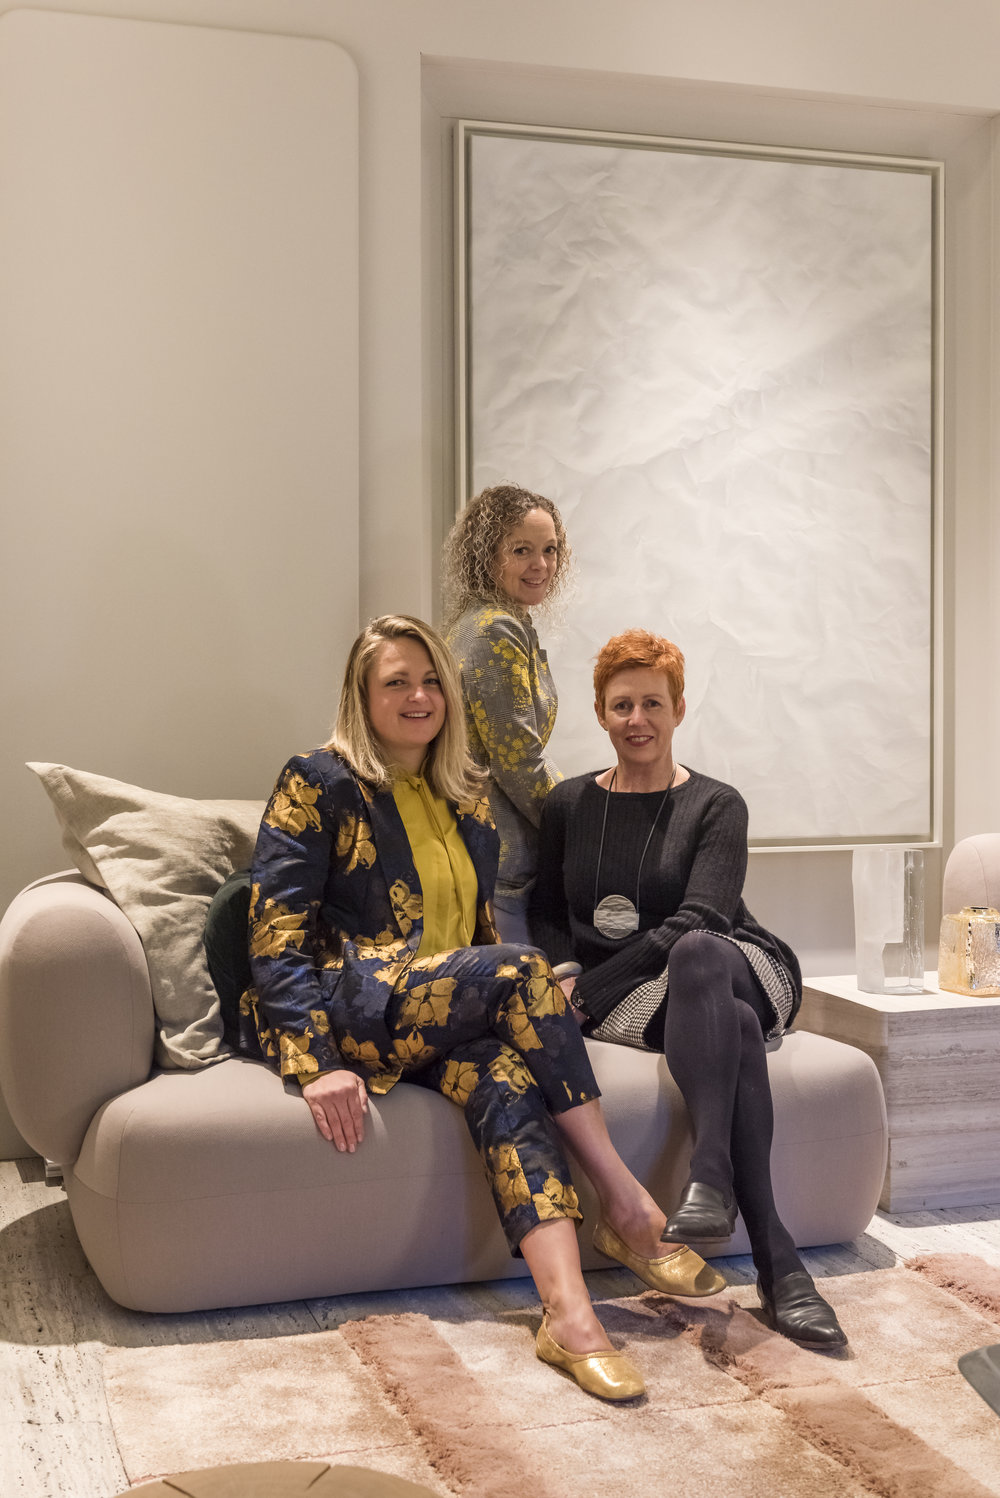 Seated with J.Phine designers, Nannette van der Vooren and Natasja Molenaar.  Photo by Andreas von Einsiedel